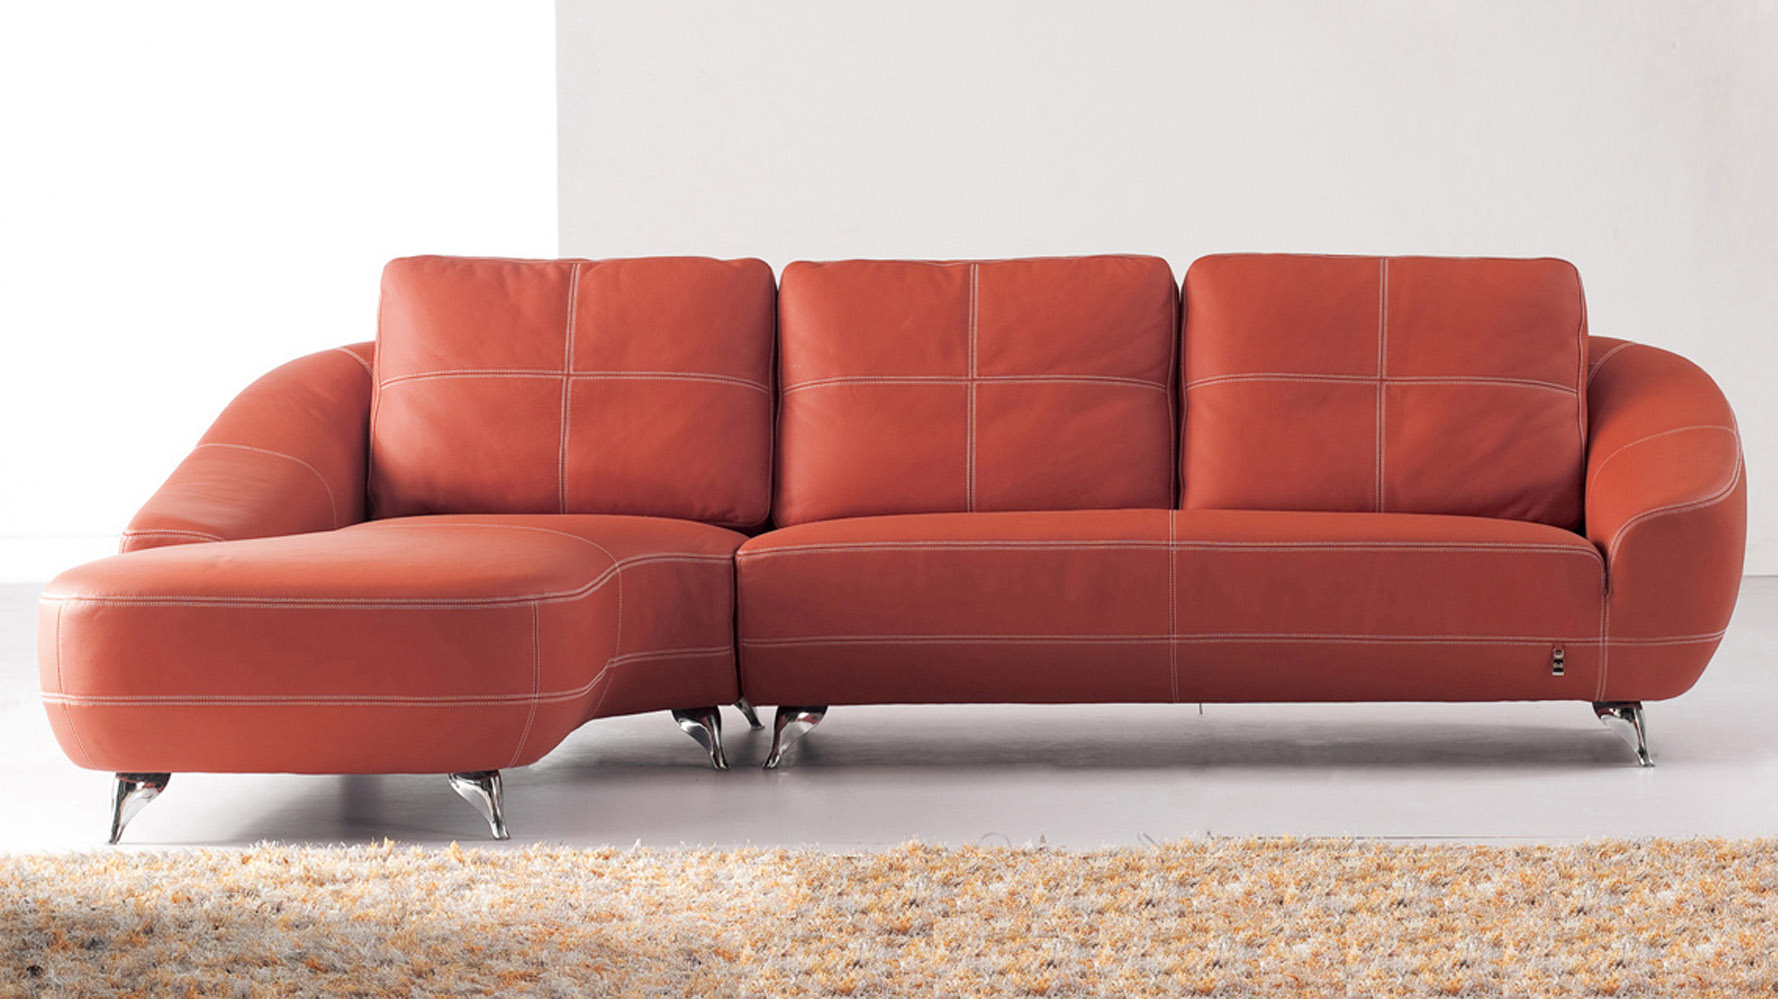 leather orange sofa chester persimmon orange sofa sofas article modern mid thesofa. Black Bedroom Furniture Sets. Home Design Ideas